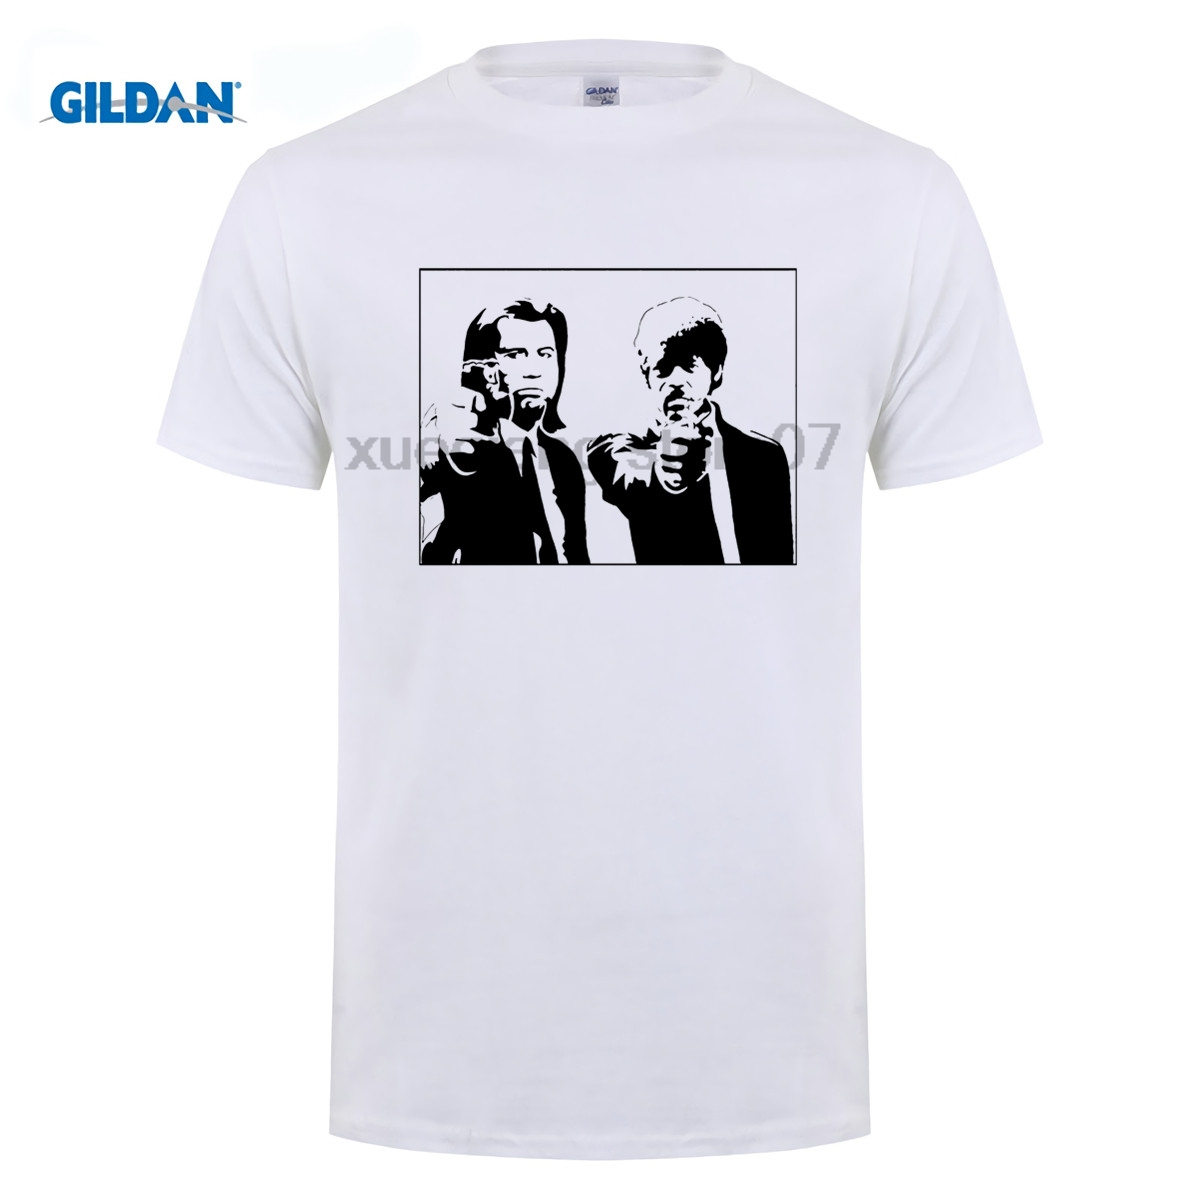 movie-pulp-fiction-tekens-t-shirt-mannen-uma-thurman-quentin-font-b-tarantino-b-font-t-shirt-man-korte-mouwen-top-tees-3xl